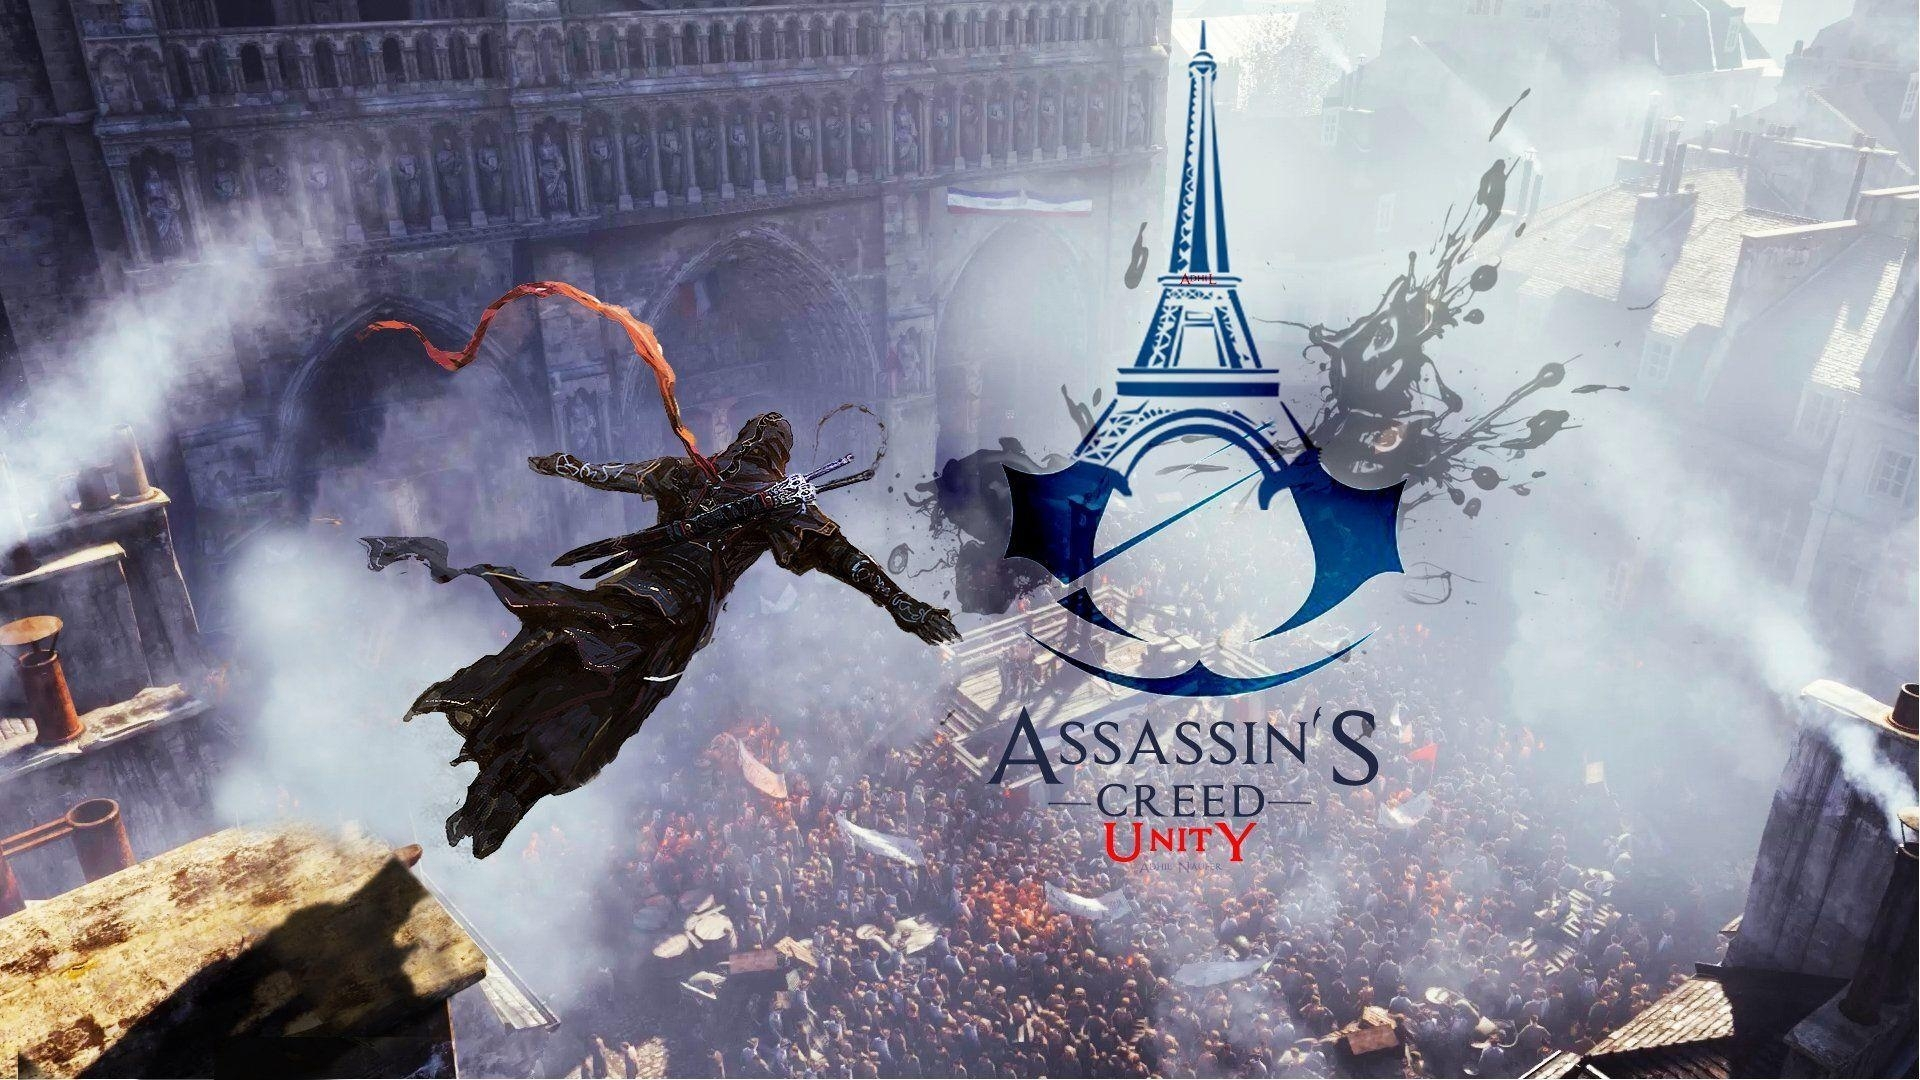 assassin's creed unity wallpapers - wallpaper cave